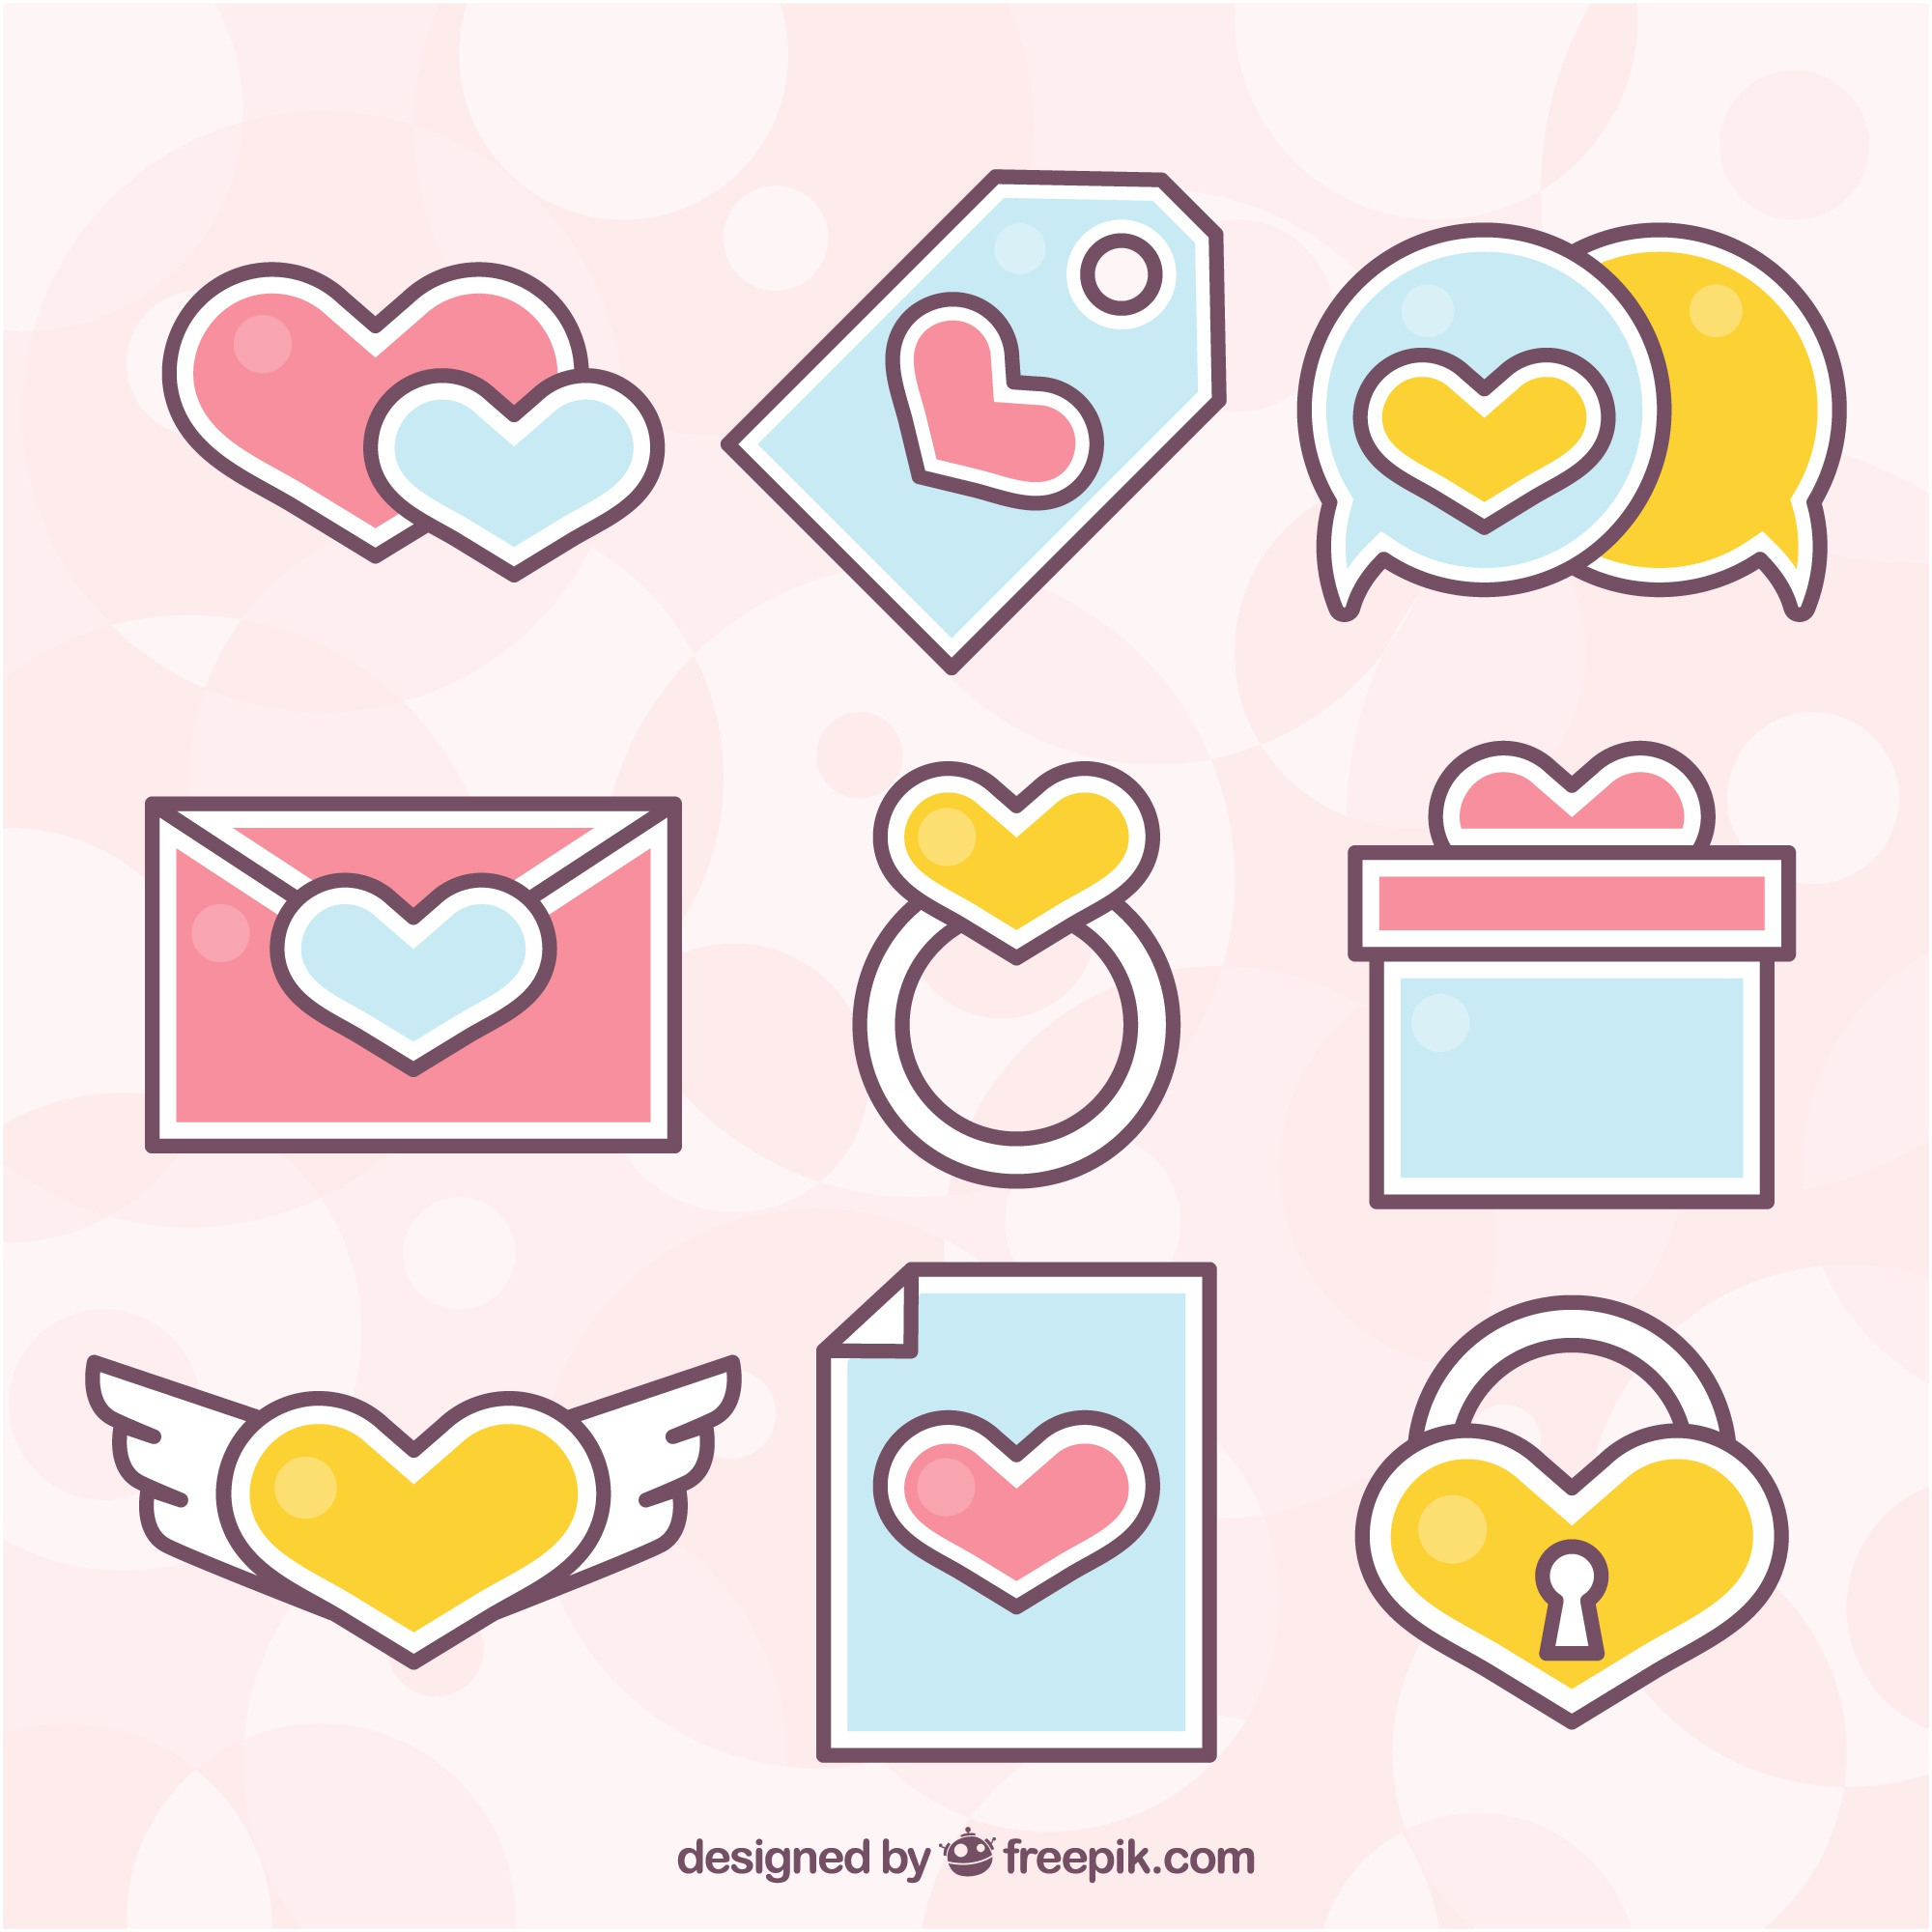 Pack of flat objects in pastel colors for valentine's day